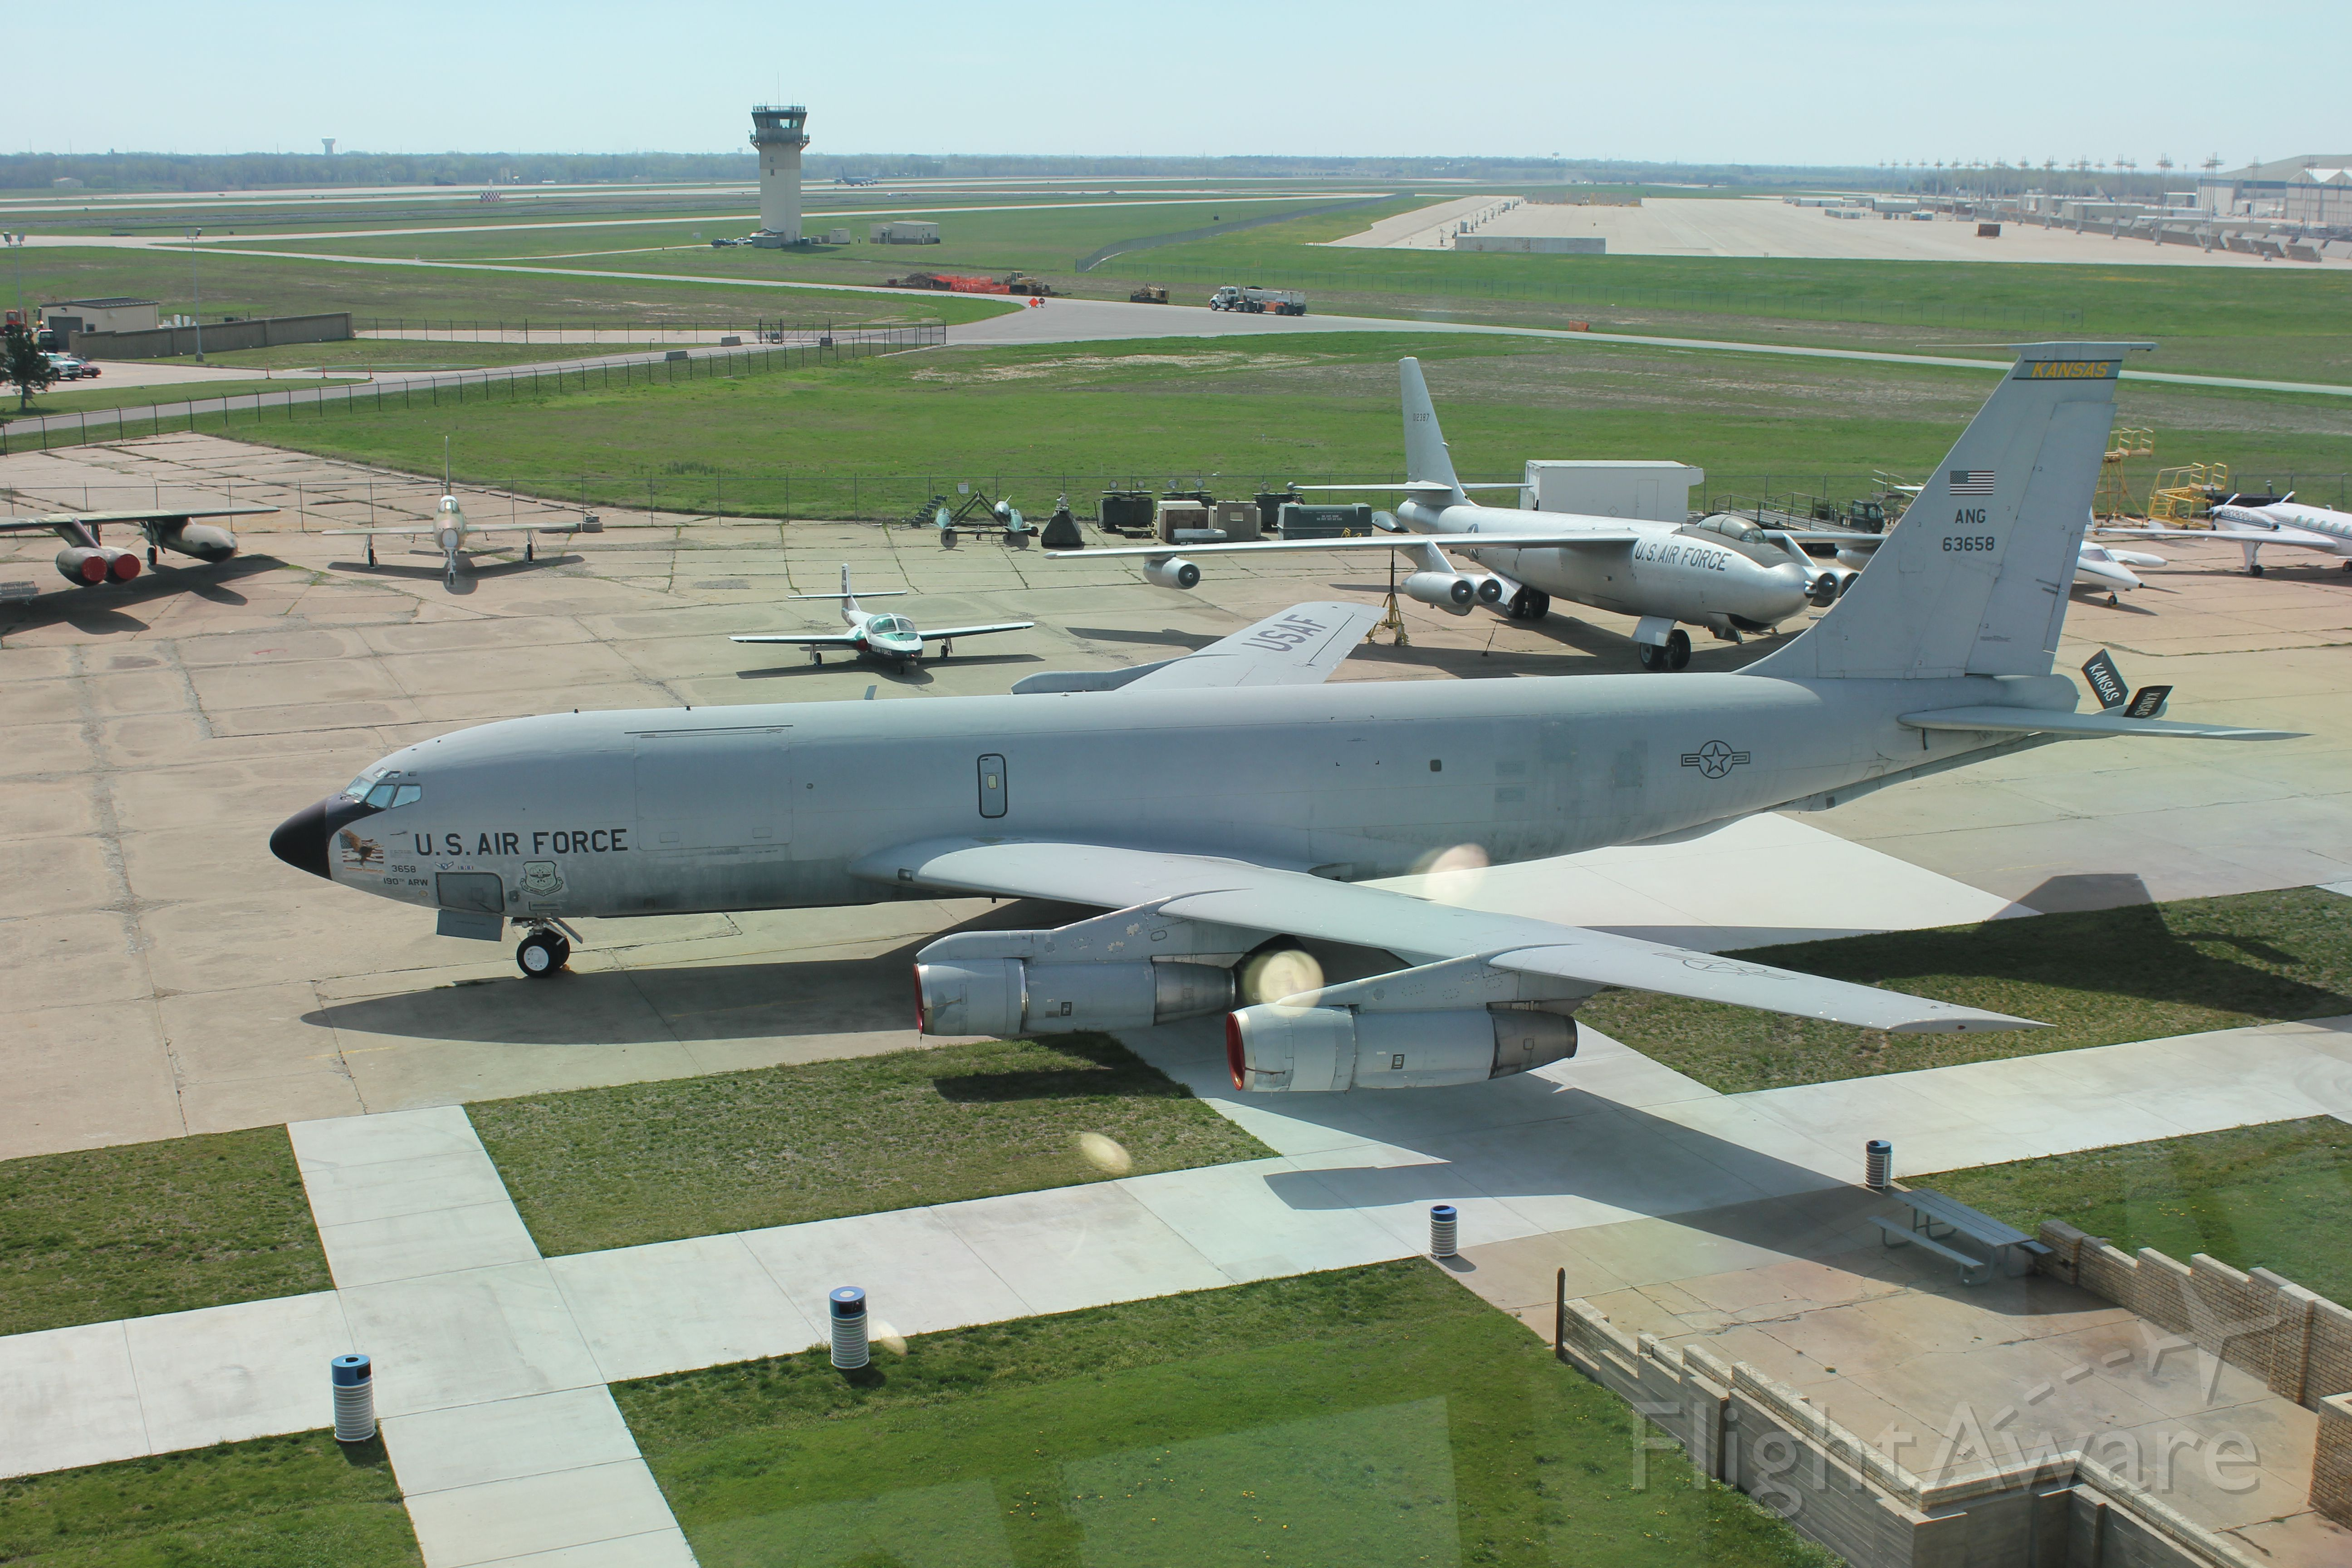 Boeing C-135FR Stratotanker (56-3658) - View from the tower at the Kansas Air Museum in Wichita.